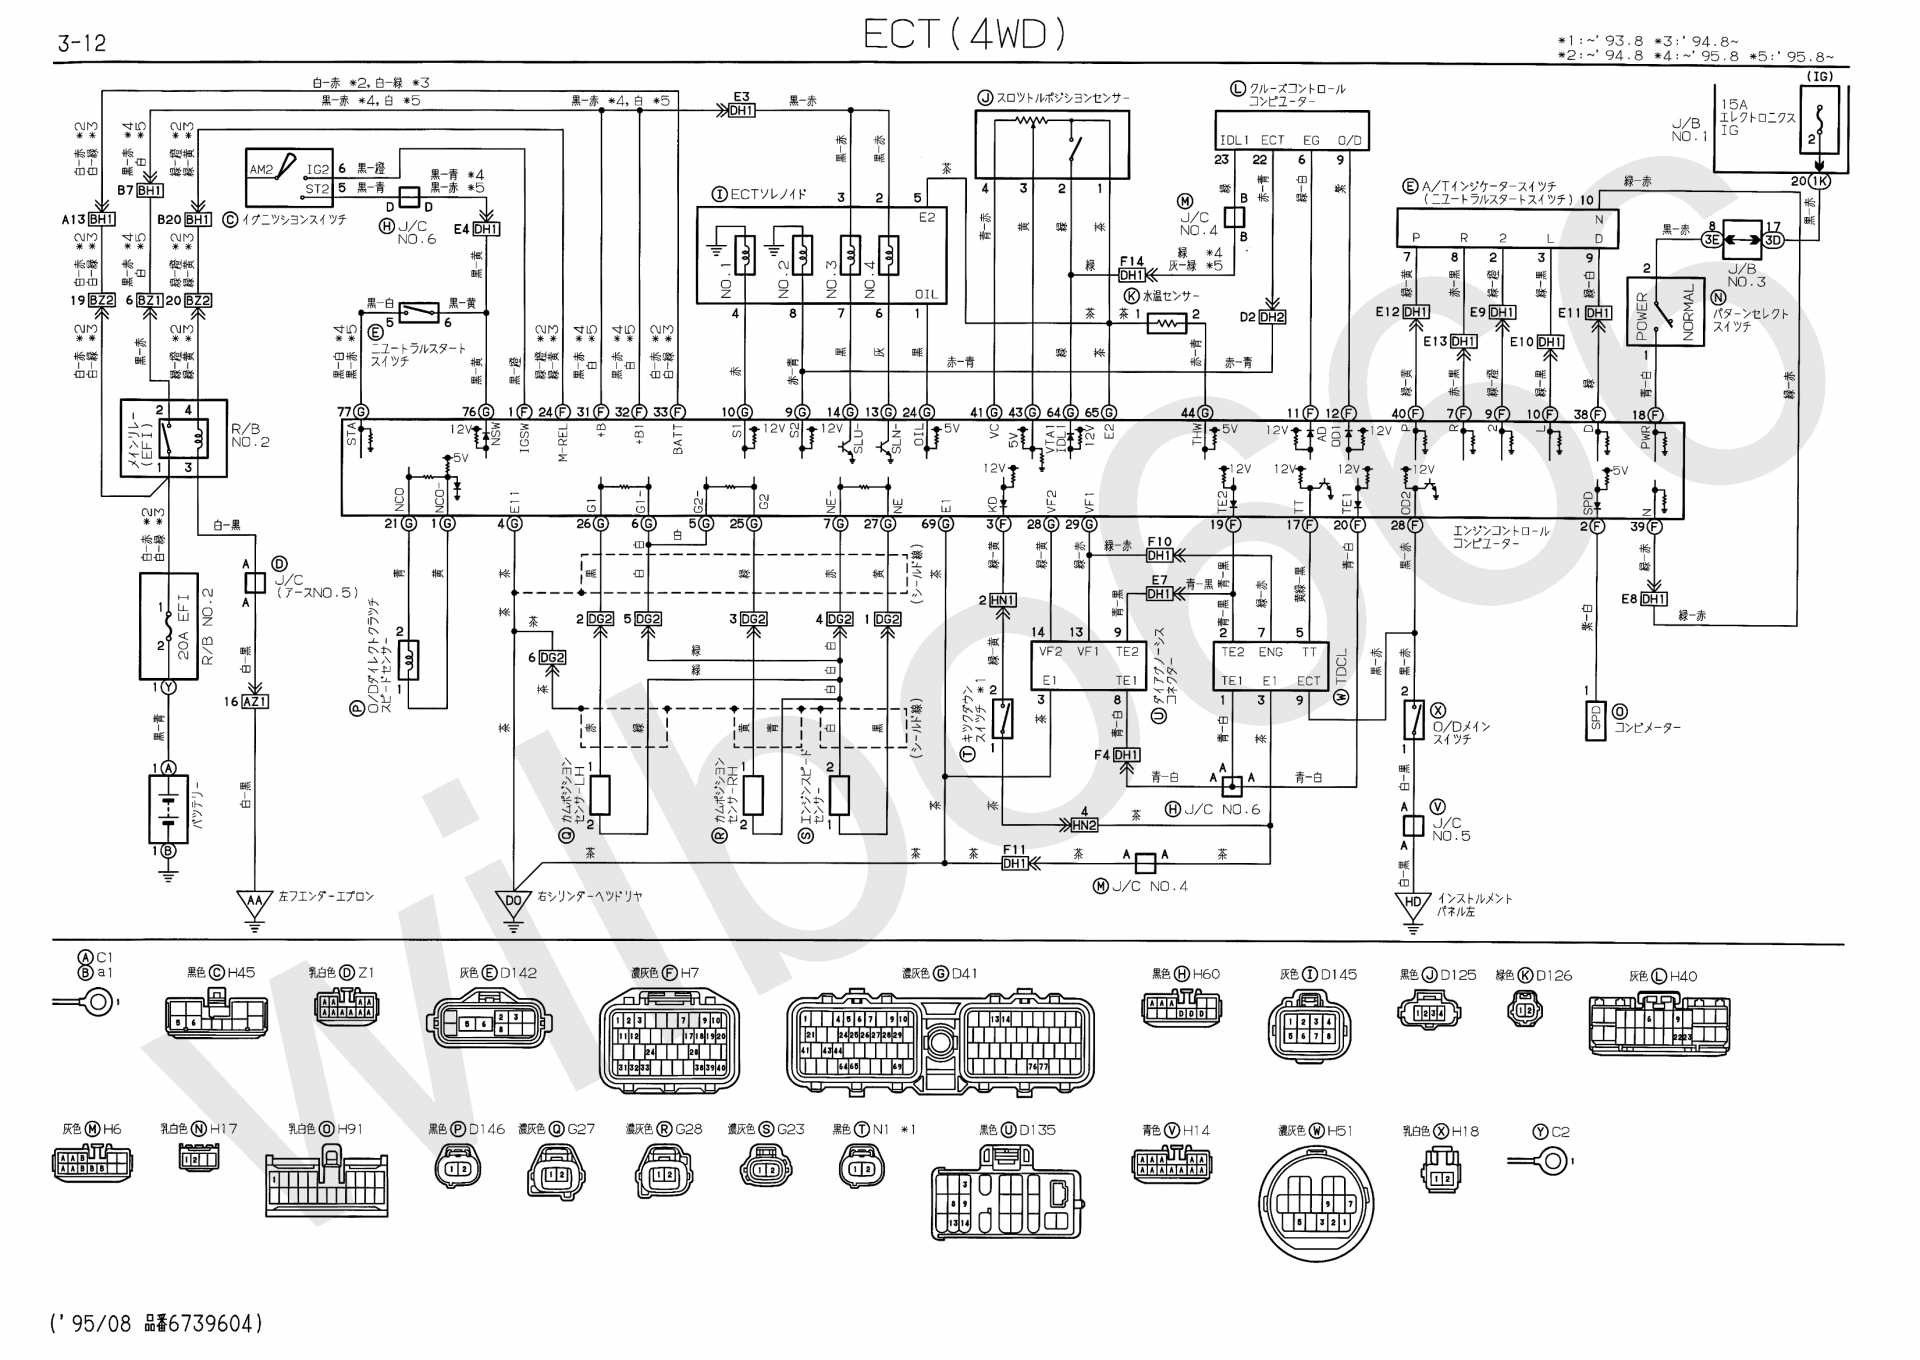 Electrical Wiring Diagrams Inspirational House Wiring Diagram Electrical Floor Plan 2004 2010 Bmw X3 E83 3